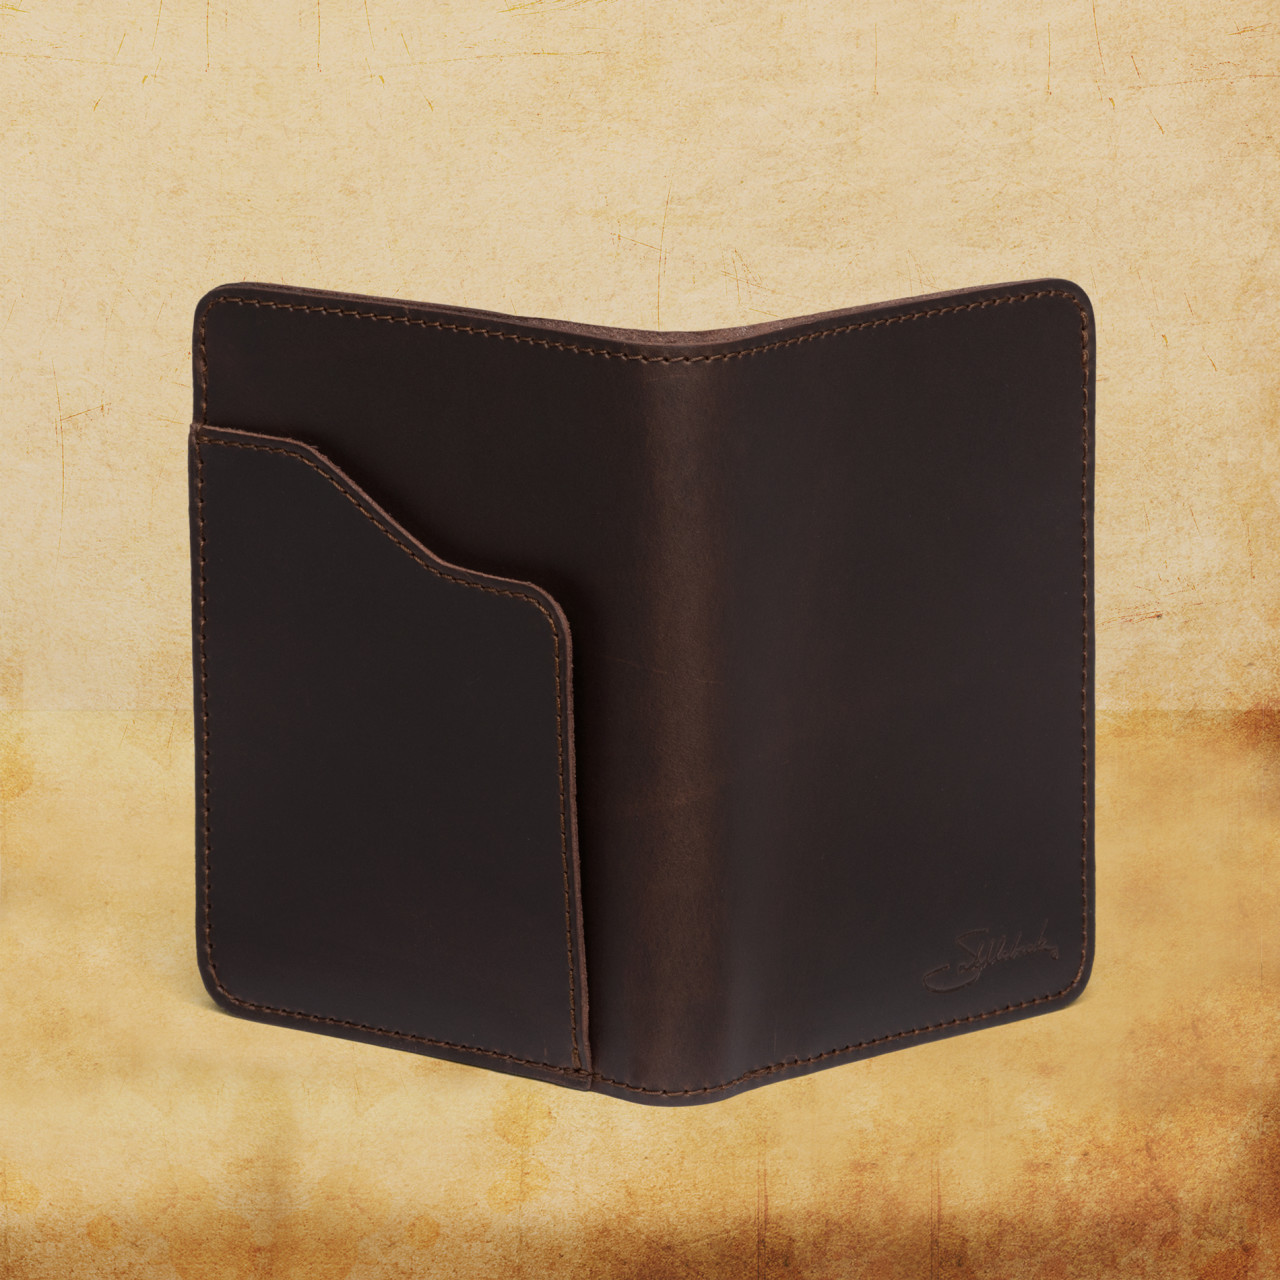 Color: Dark Coffee Brown